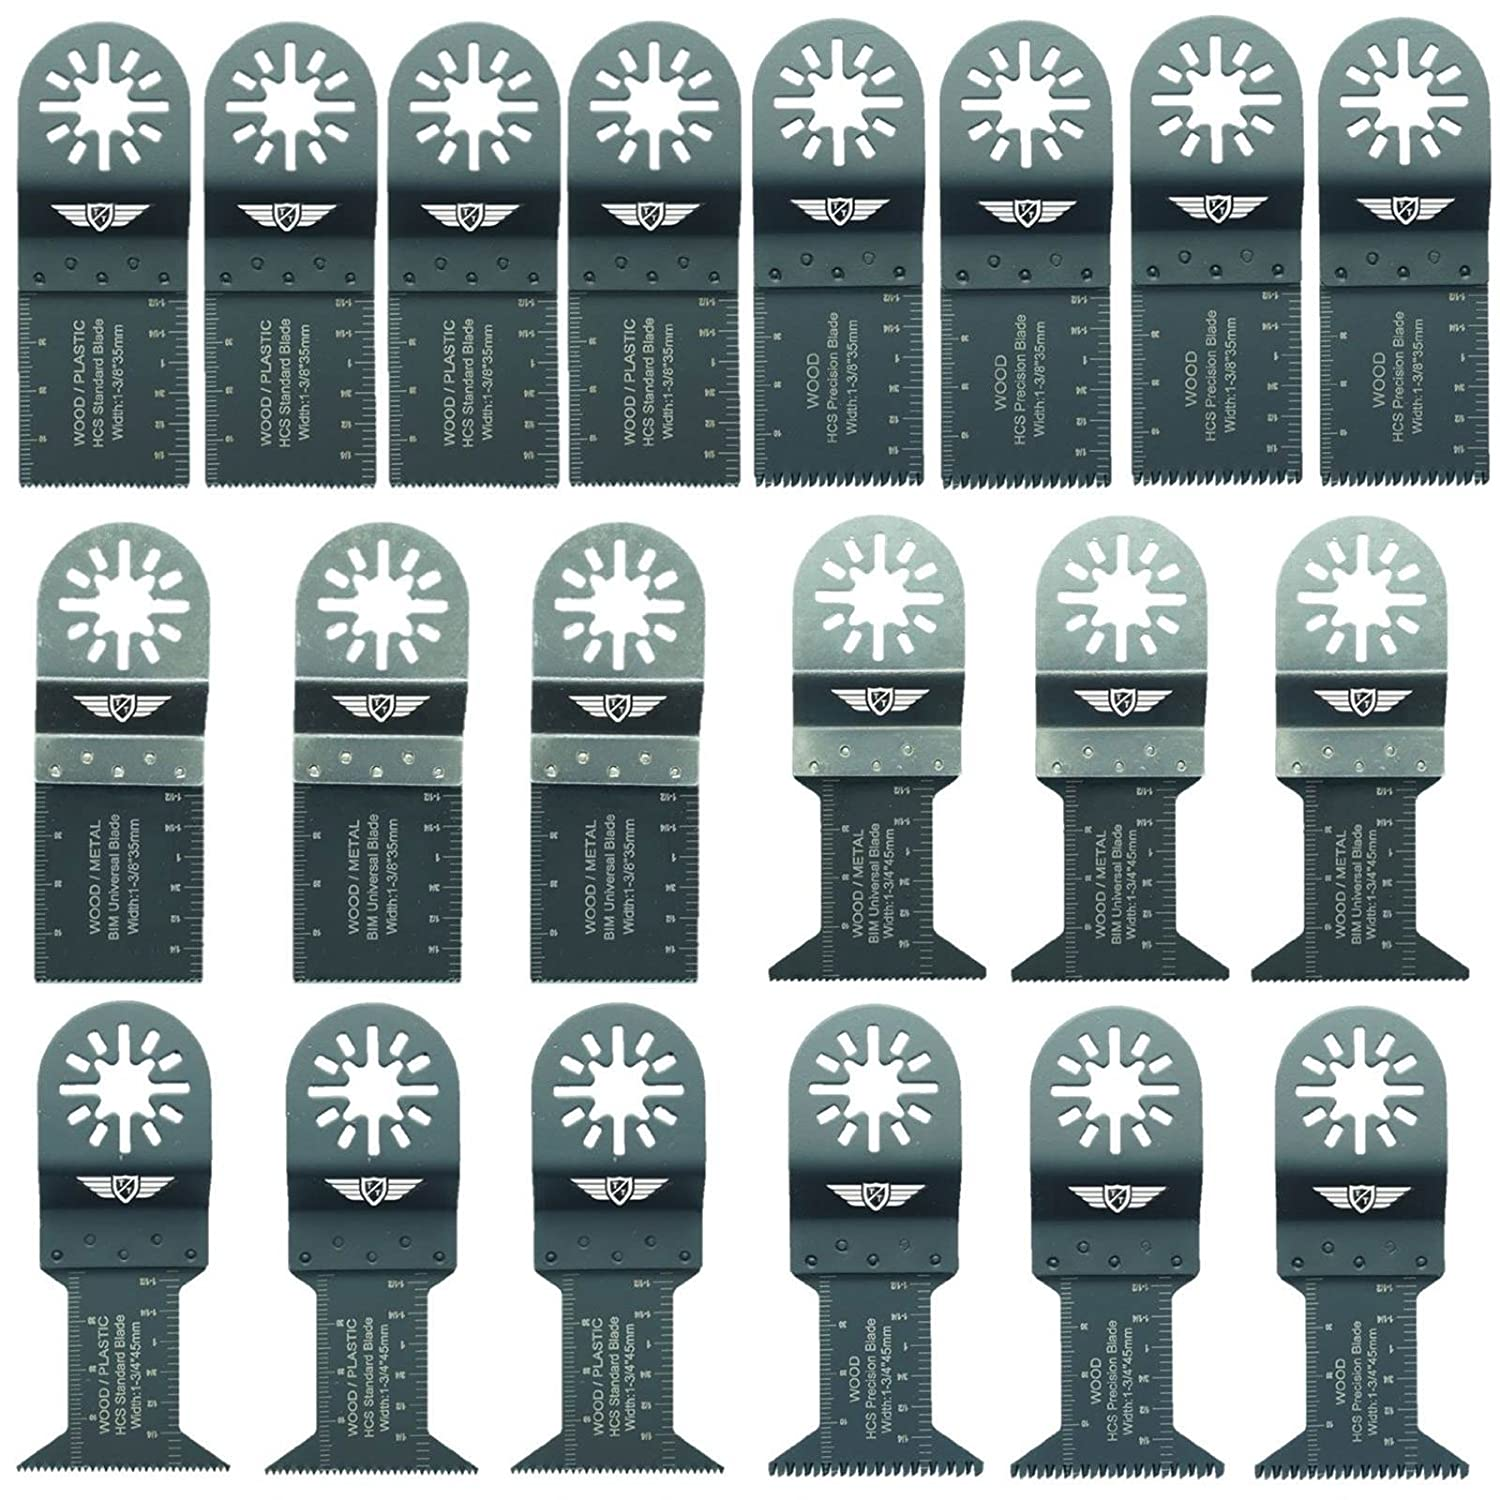 20 x TopsTools UNK20 OMT Mix Blades for Bosch, Fein Multimaster, Multitalent, Makita, Milwaukee, Einhell, Ergotools, Hitachi, Parkside, Ryobi, Worx, Workzone Multitool Multi Tool Accessories